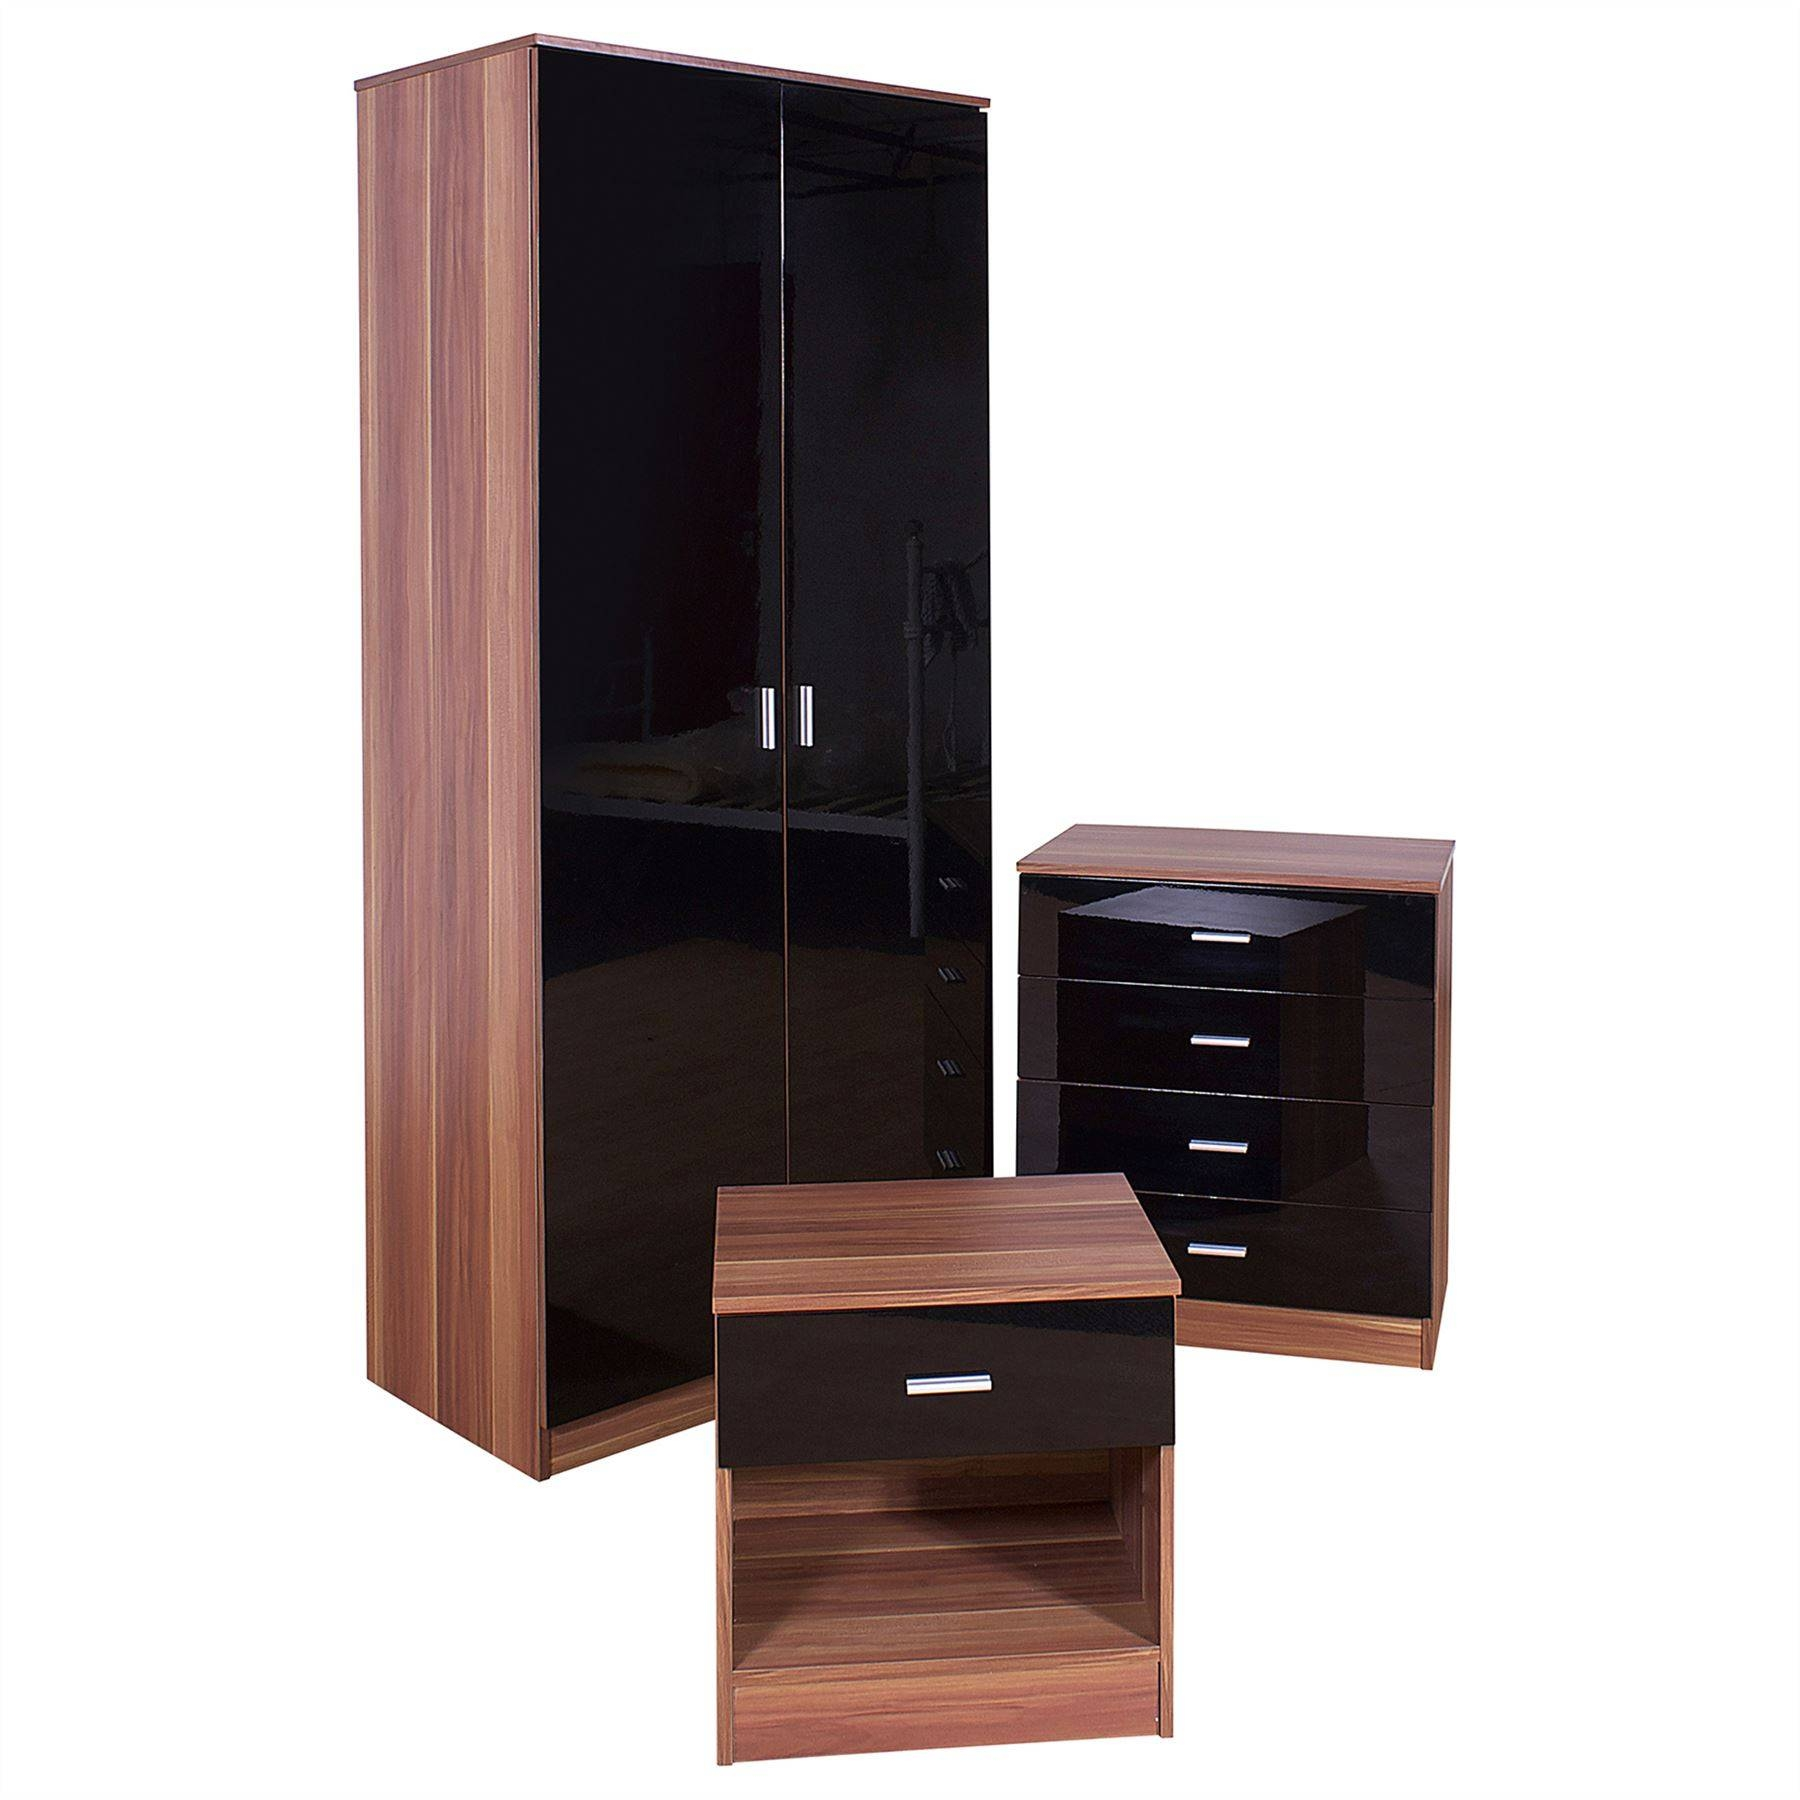 Caspian High Gloss Black Walnut Bedroom Furniture Set intended for Wardrobes Sets (Image 9 of 15)